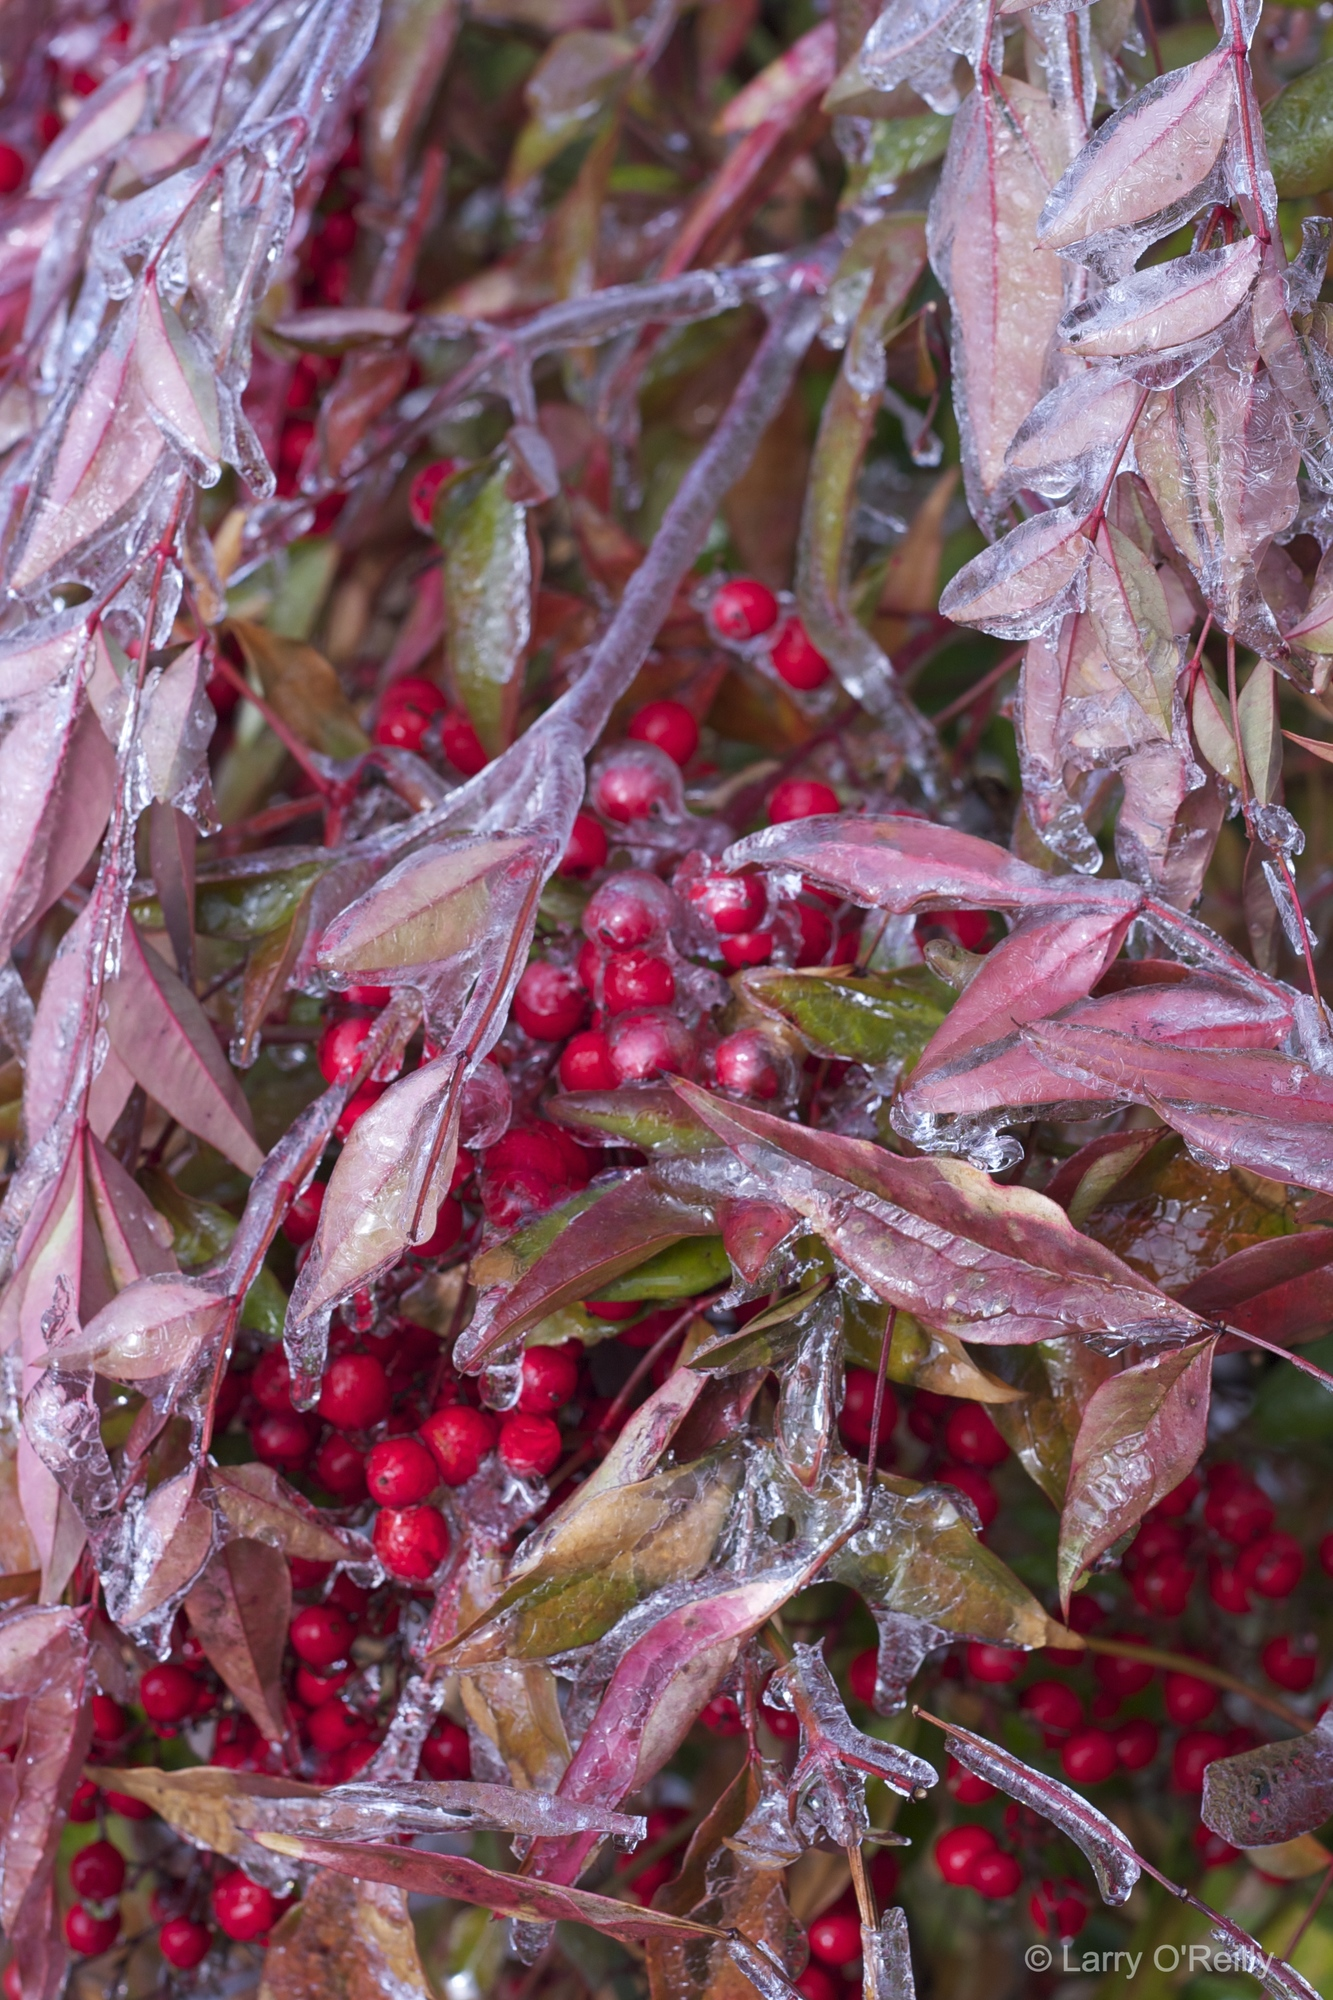 Winter Berries with Ice, 2013